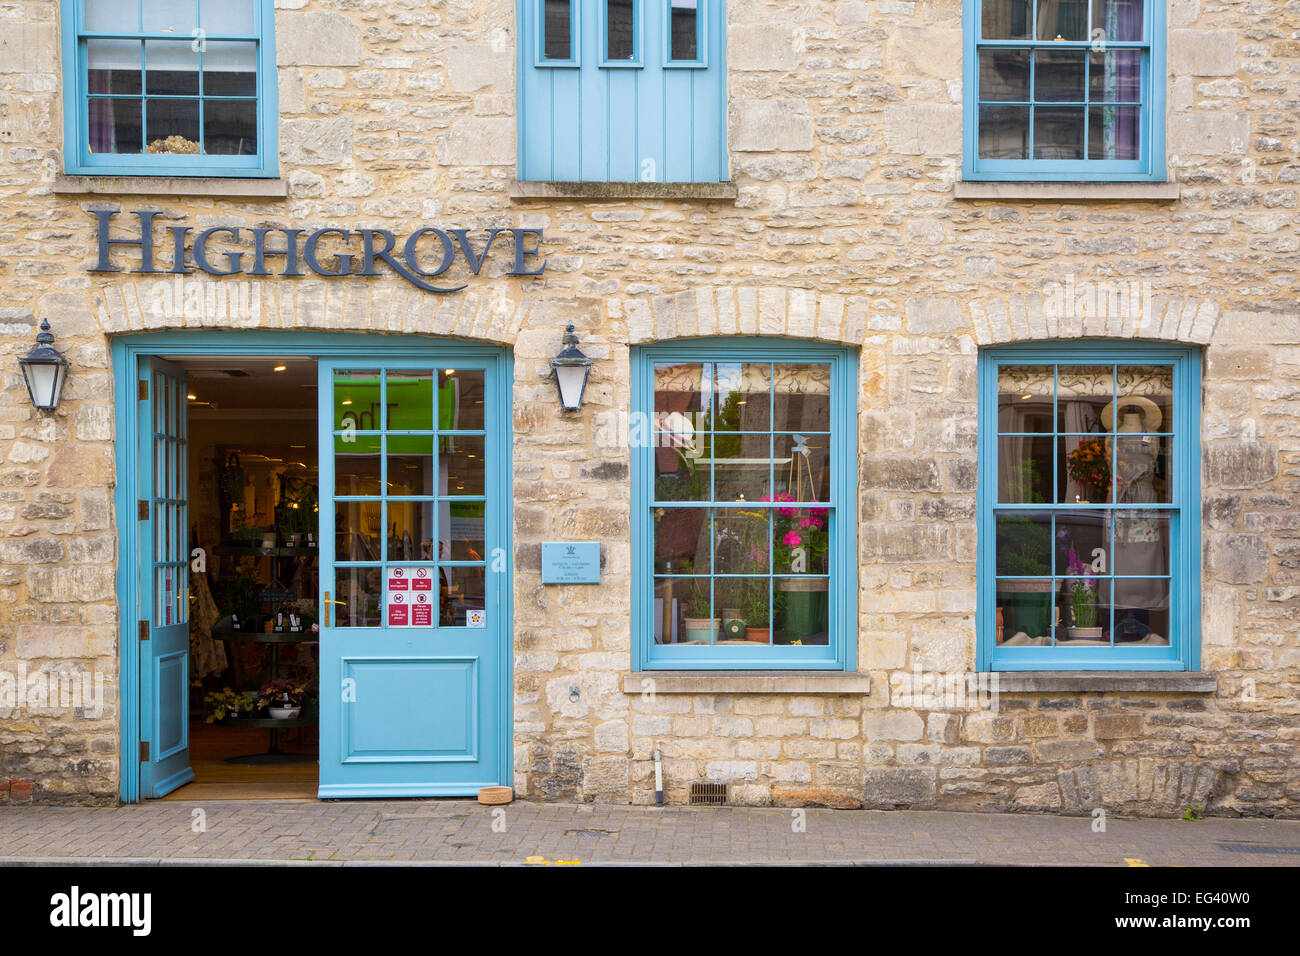 Front door of Prince Charlesu0027s Highgrove store in the Cotswold town of Tetbury Gloucestershire England UK & Front door of Prince Charlesu0027s Highgrove store in the Cotswold town ...